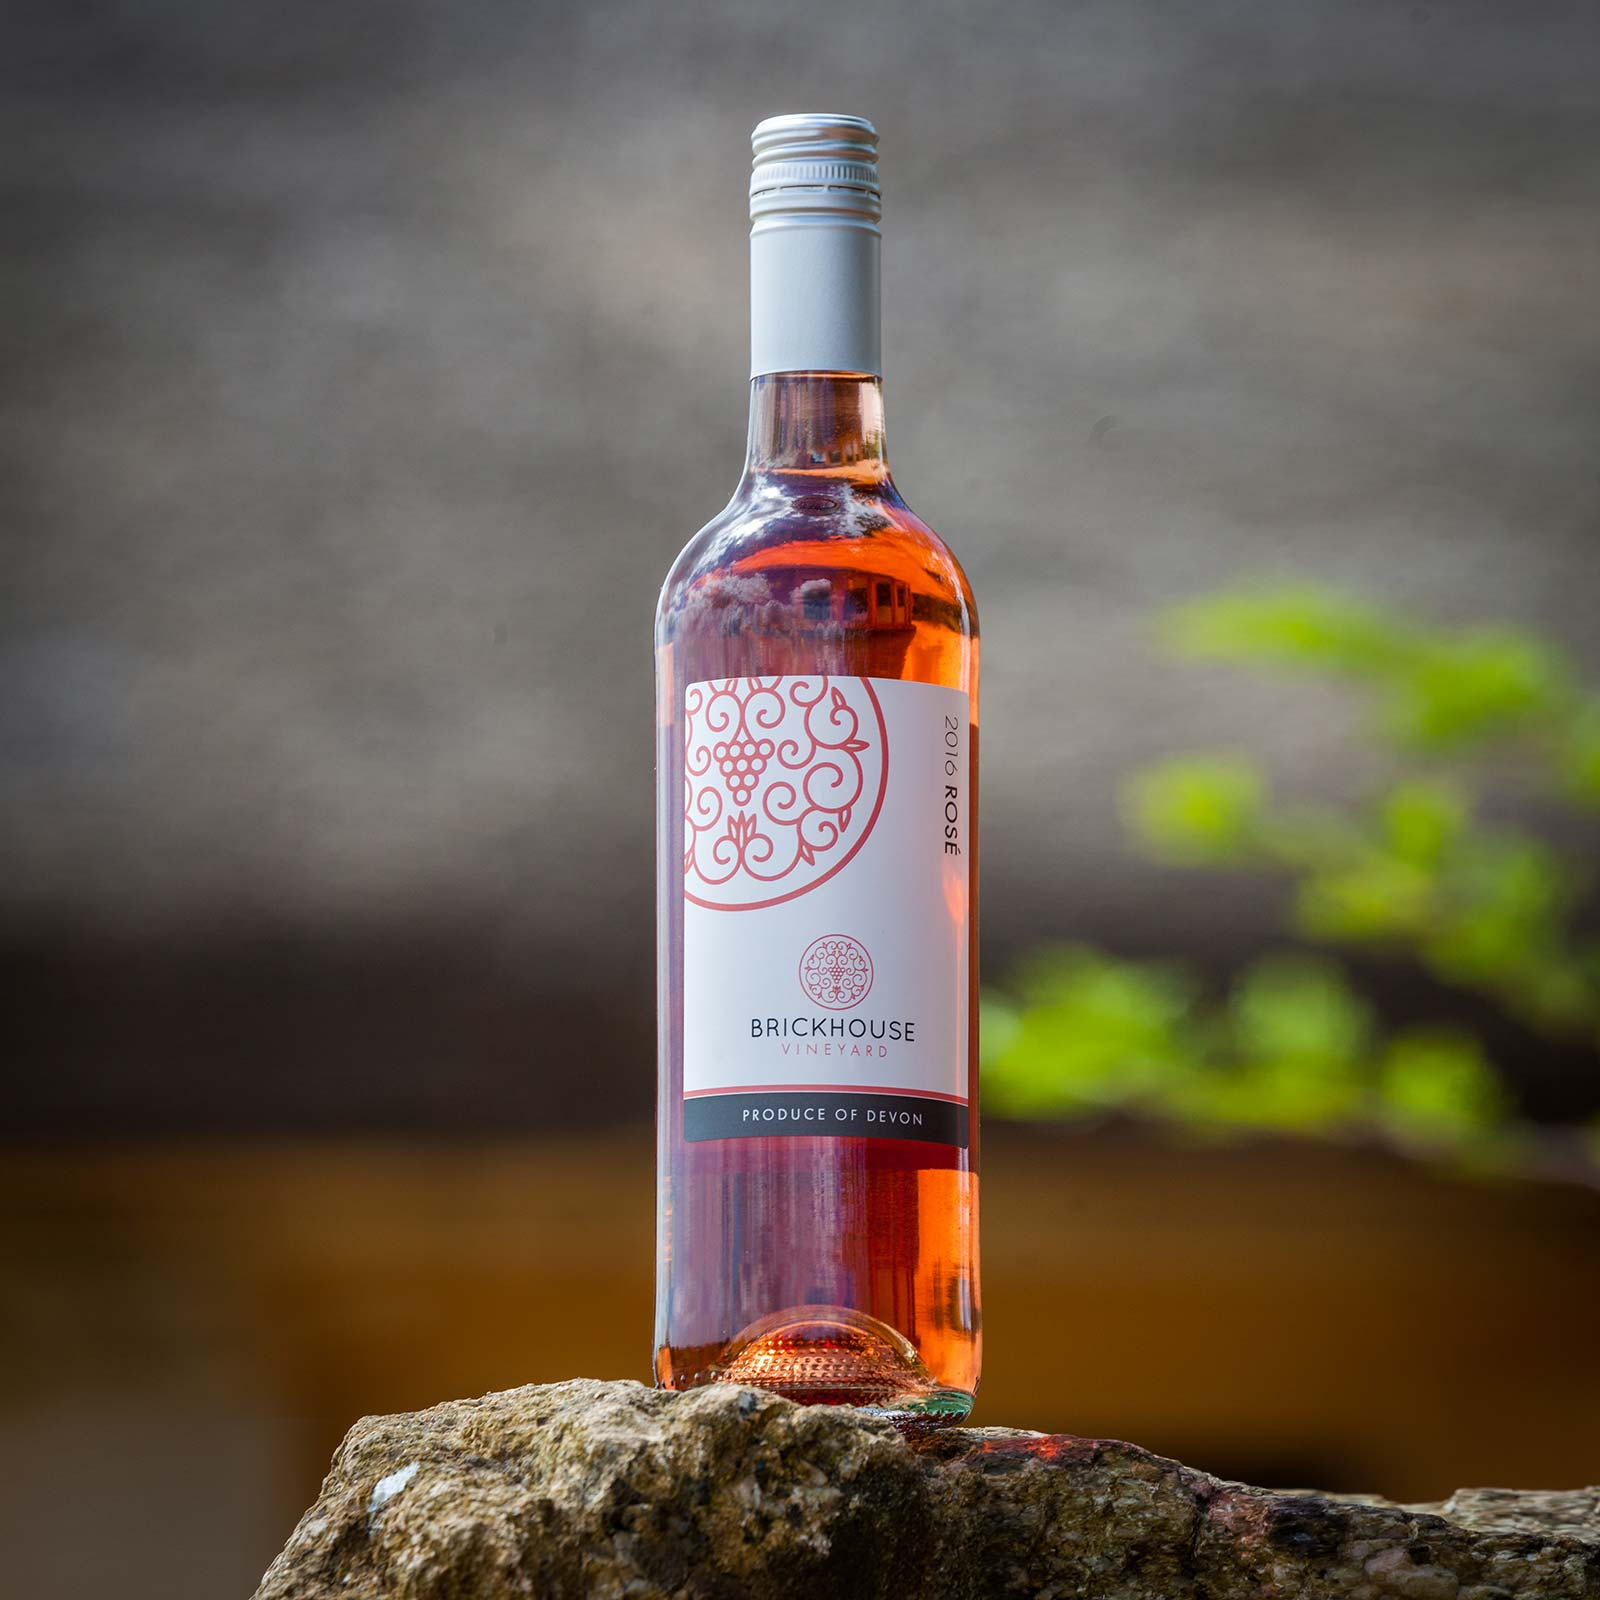 Brickhouse Vineyard English rosé wine